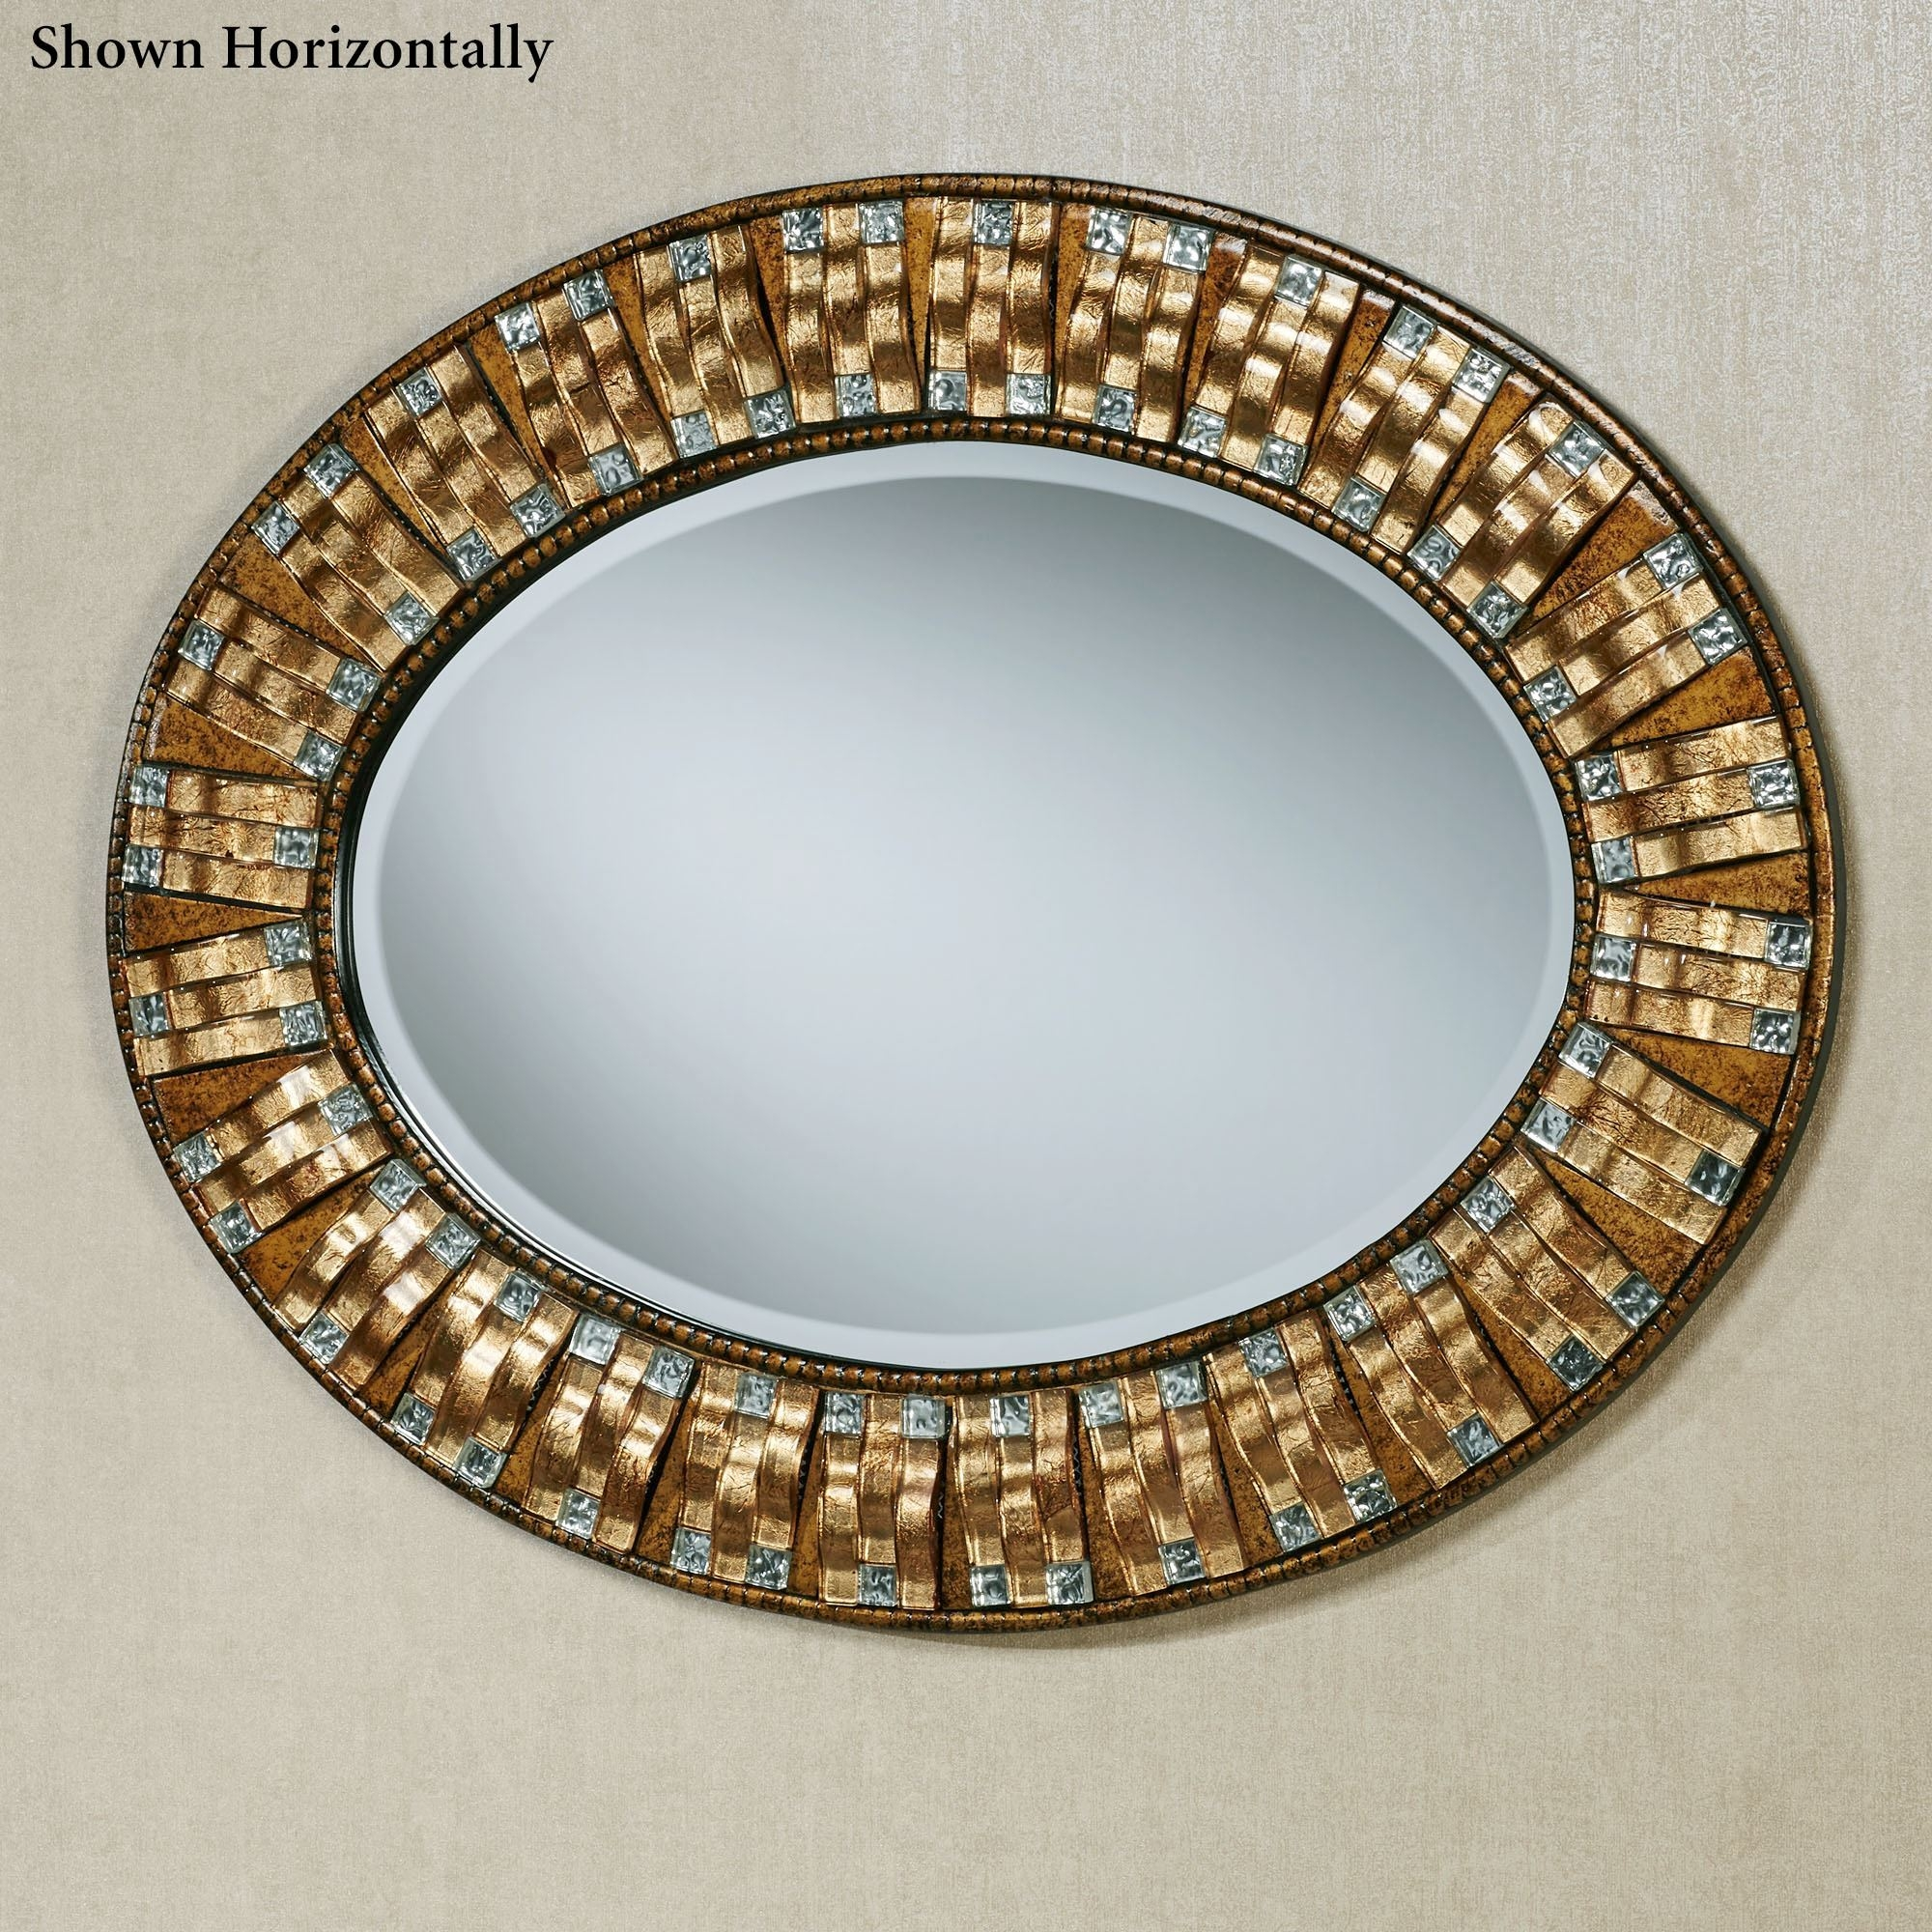 Maybelle Mosaic Oval Wall Mirror Intended For Mosaic Wall Mirrors (Image 9 of 15)